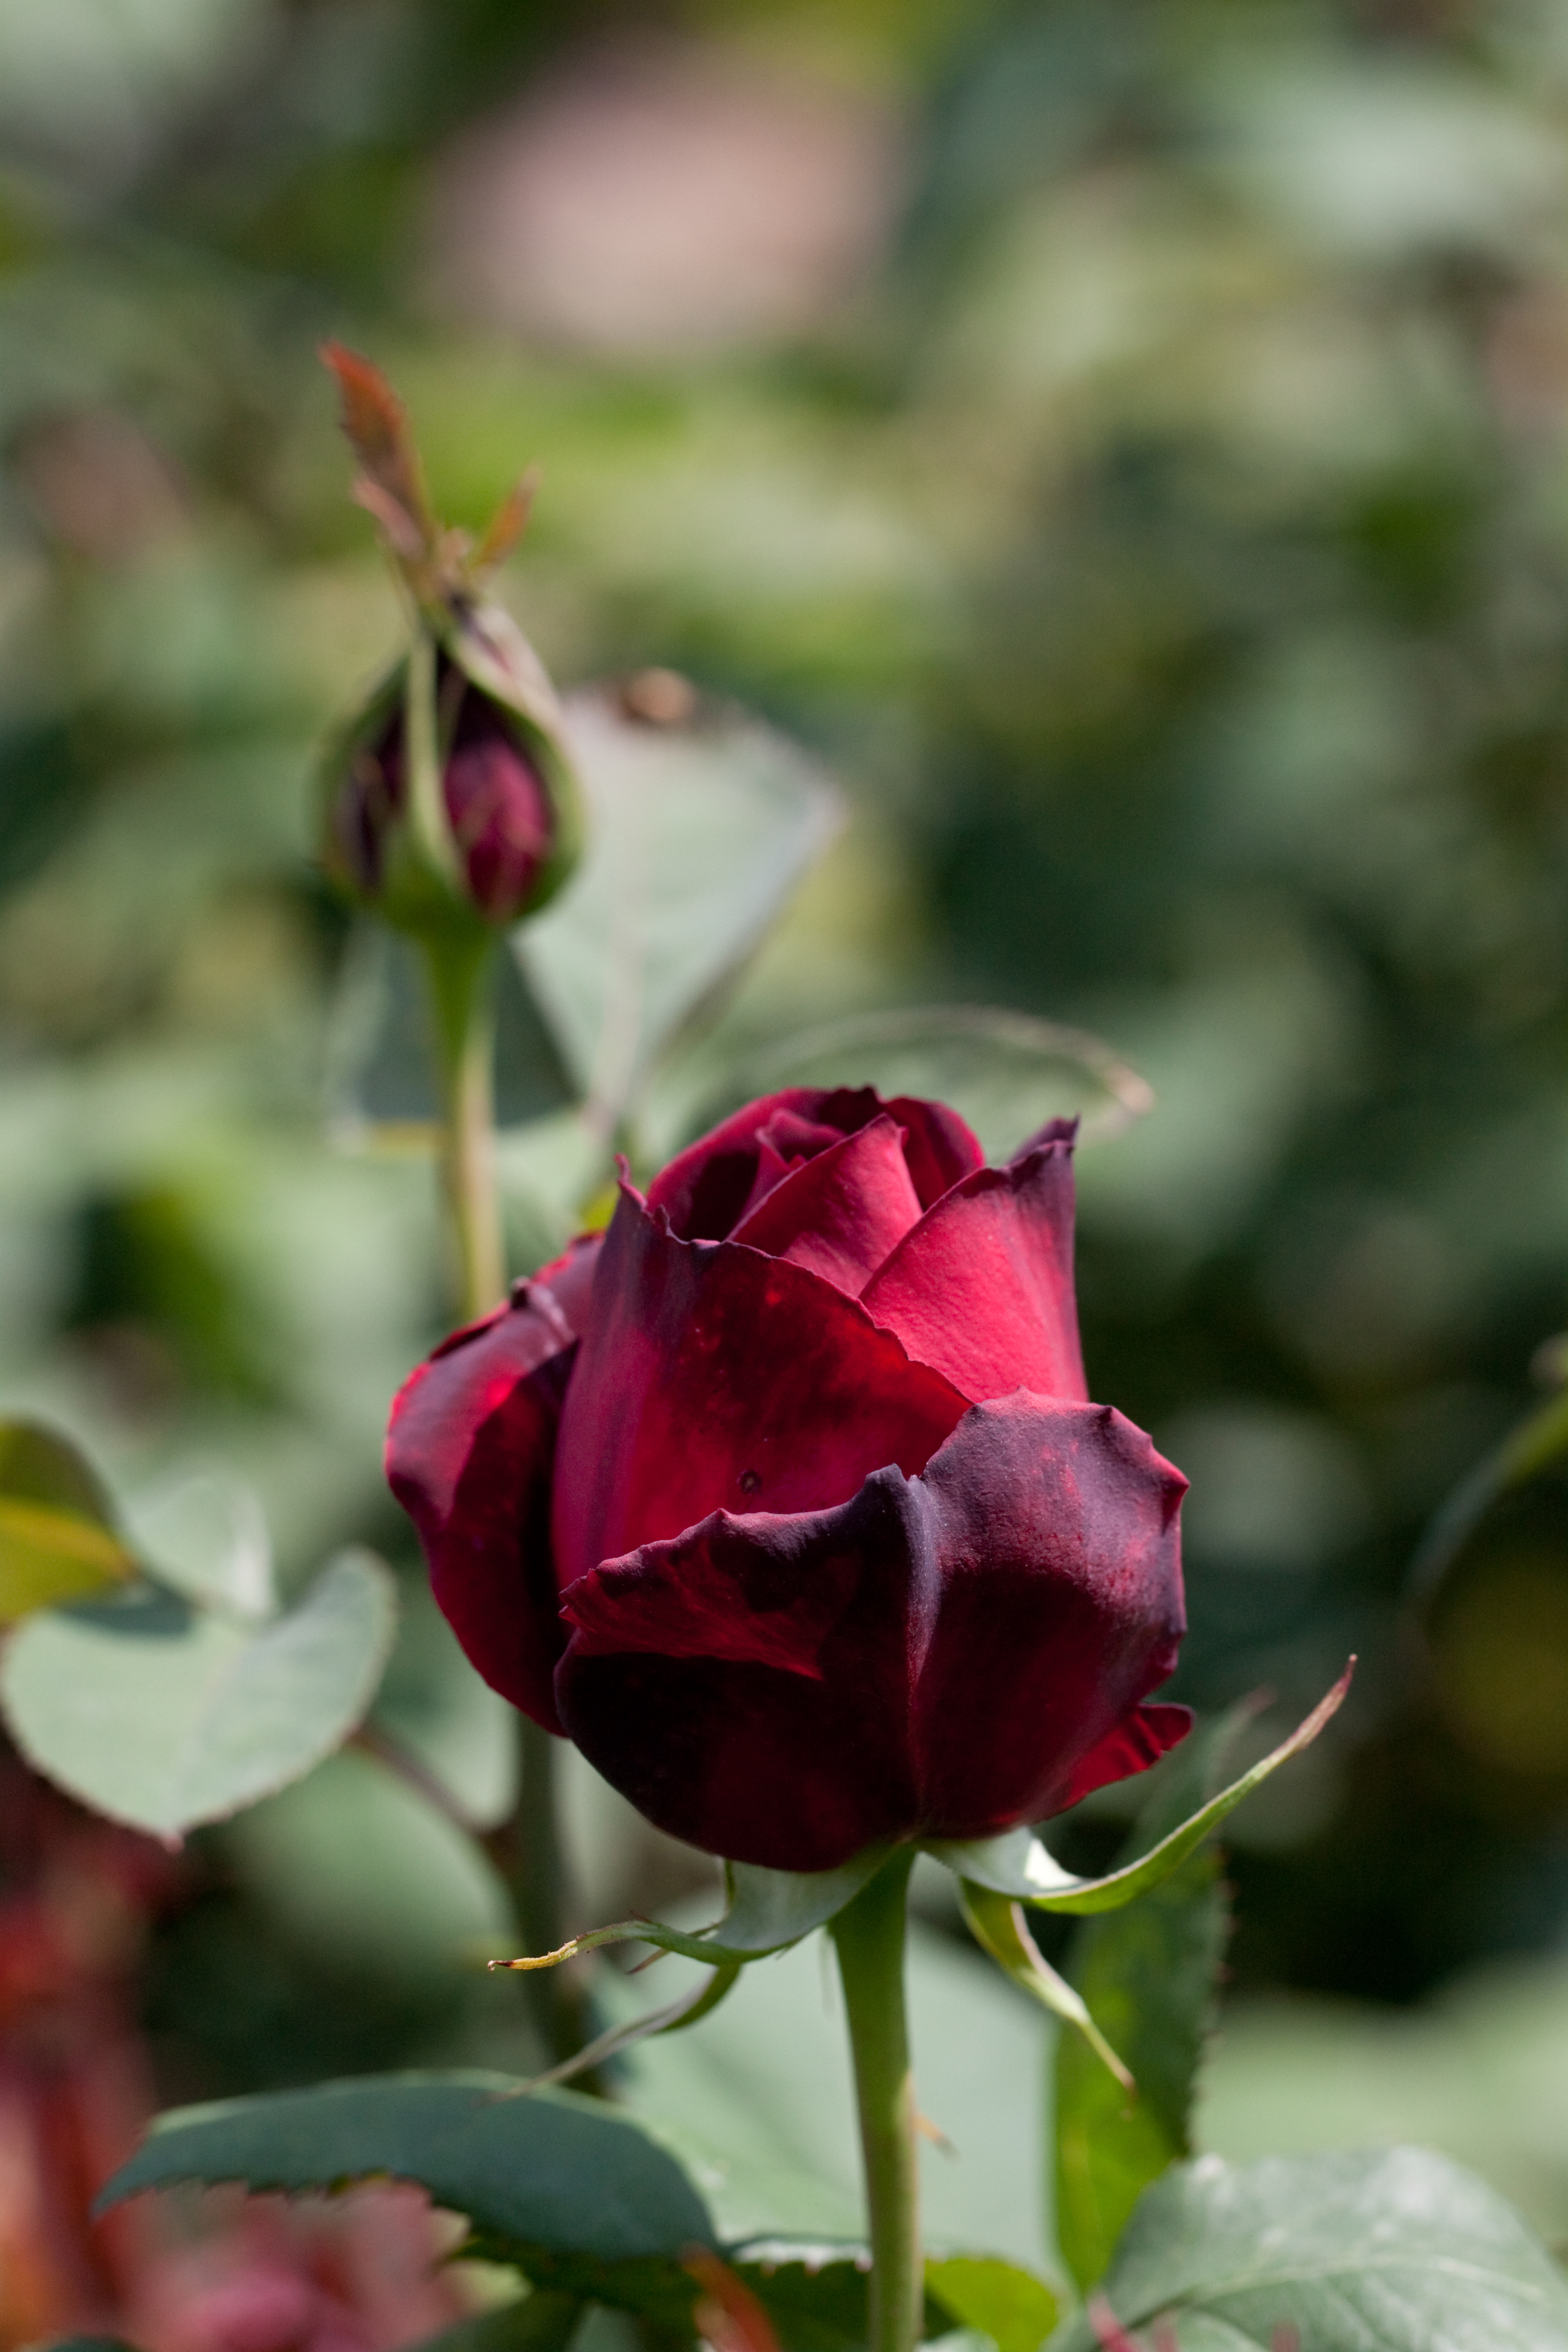 File Rose Oklahoma Flickr nekonomania Wikimedia mons